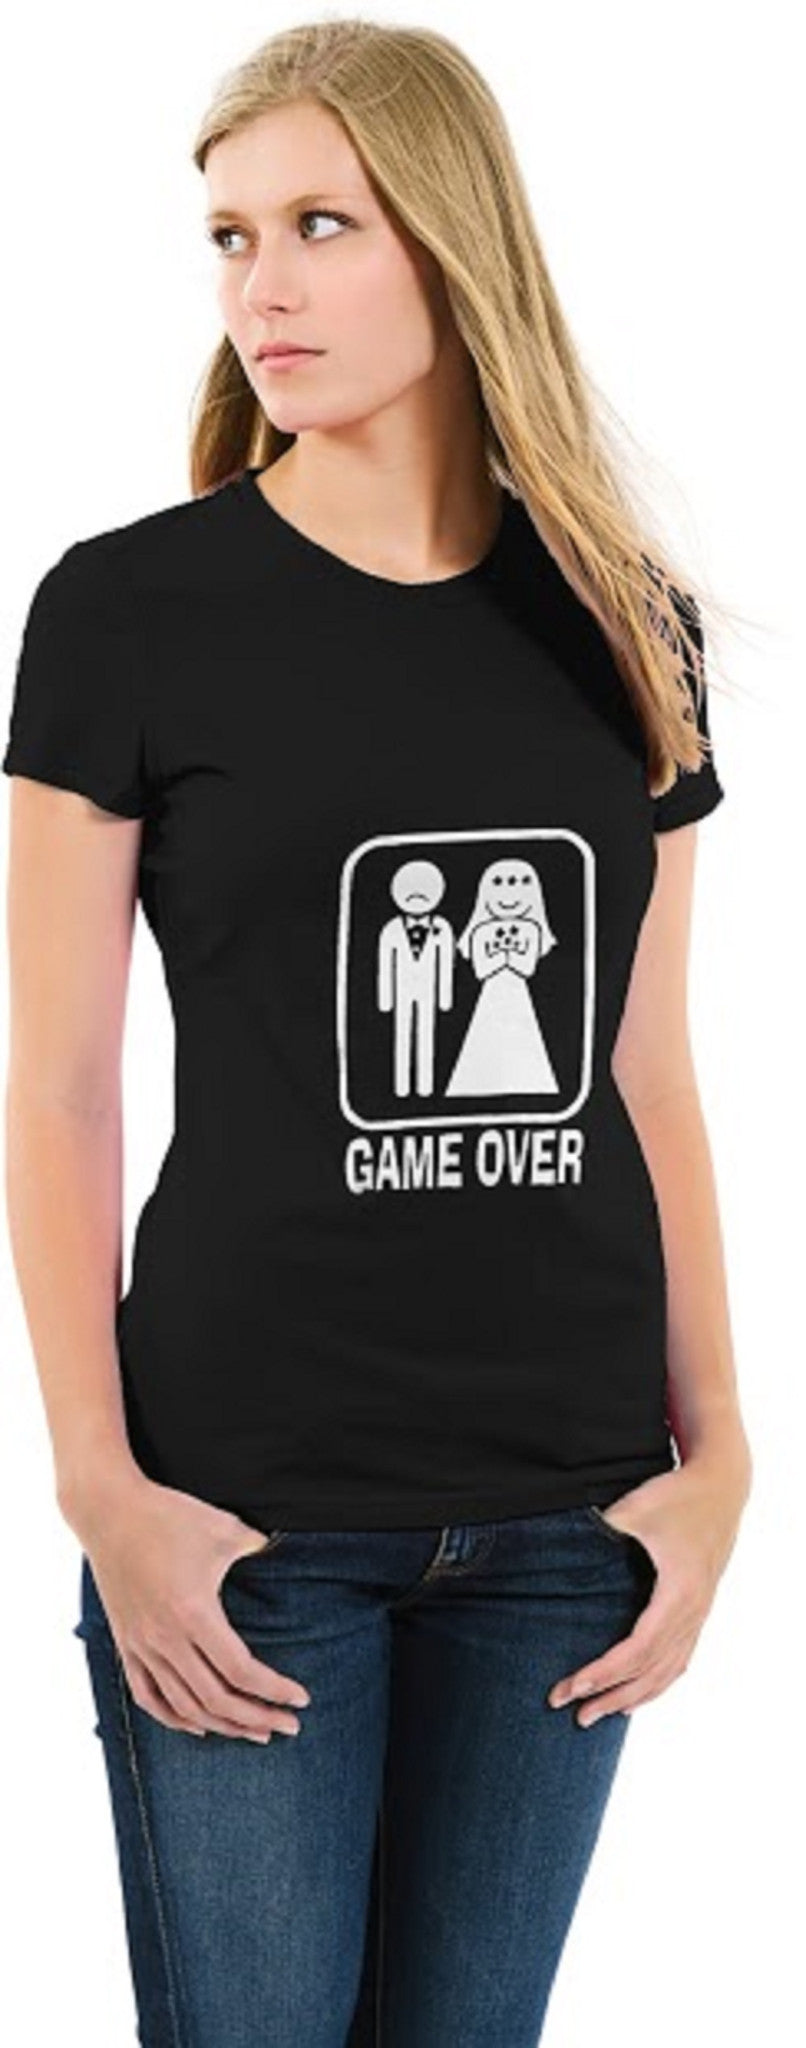 Game Over Ladies T-shirt Black